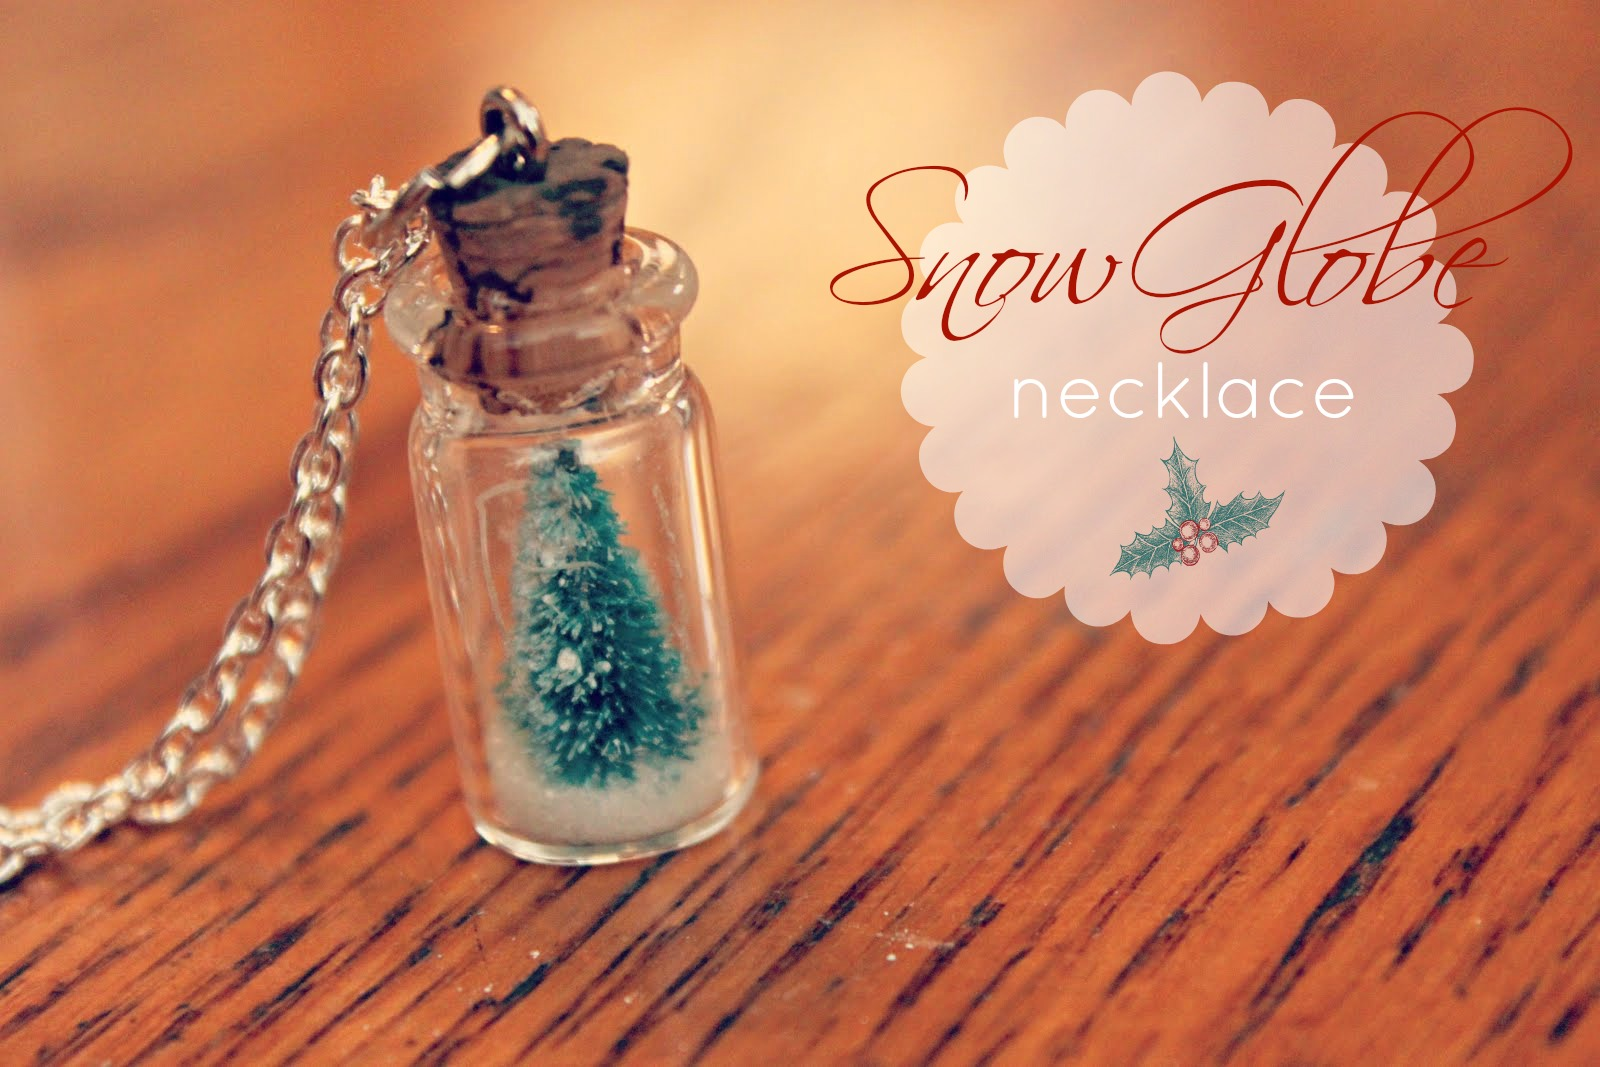 Eatsleepmake Craft Snow Globe Necklace